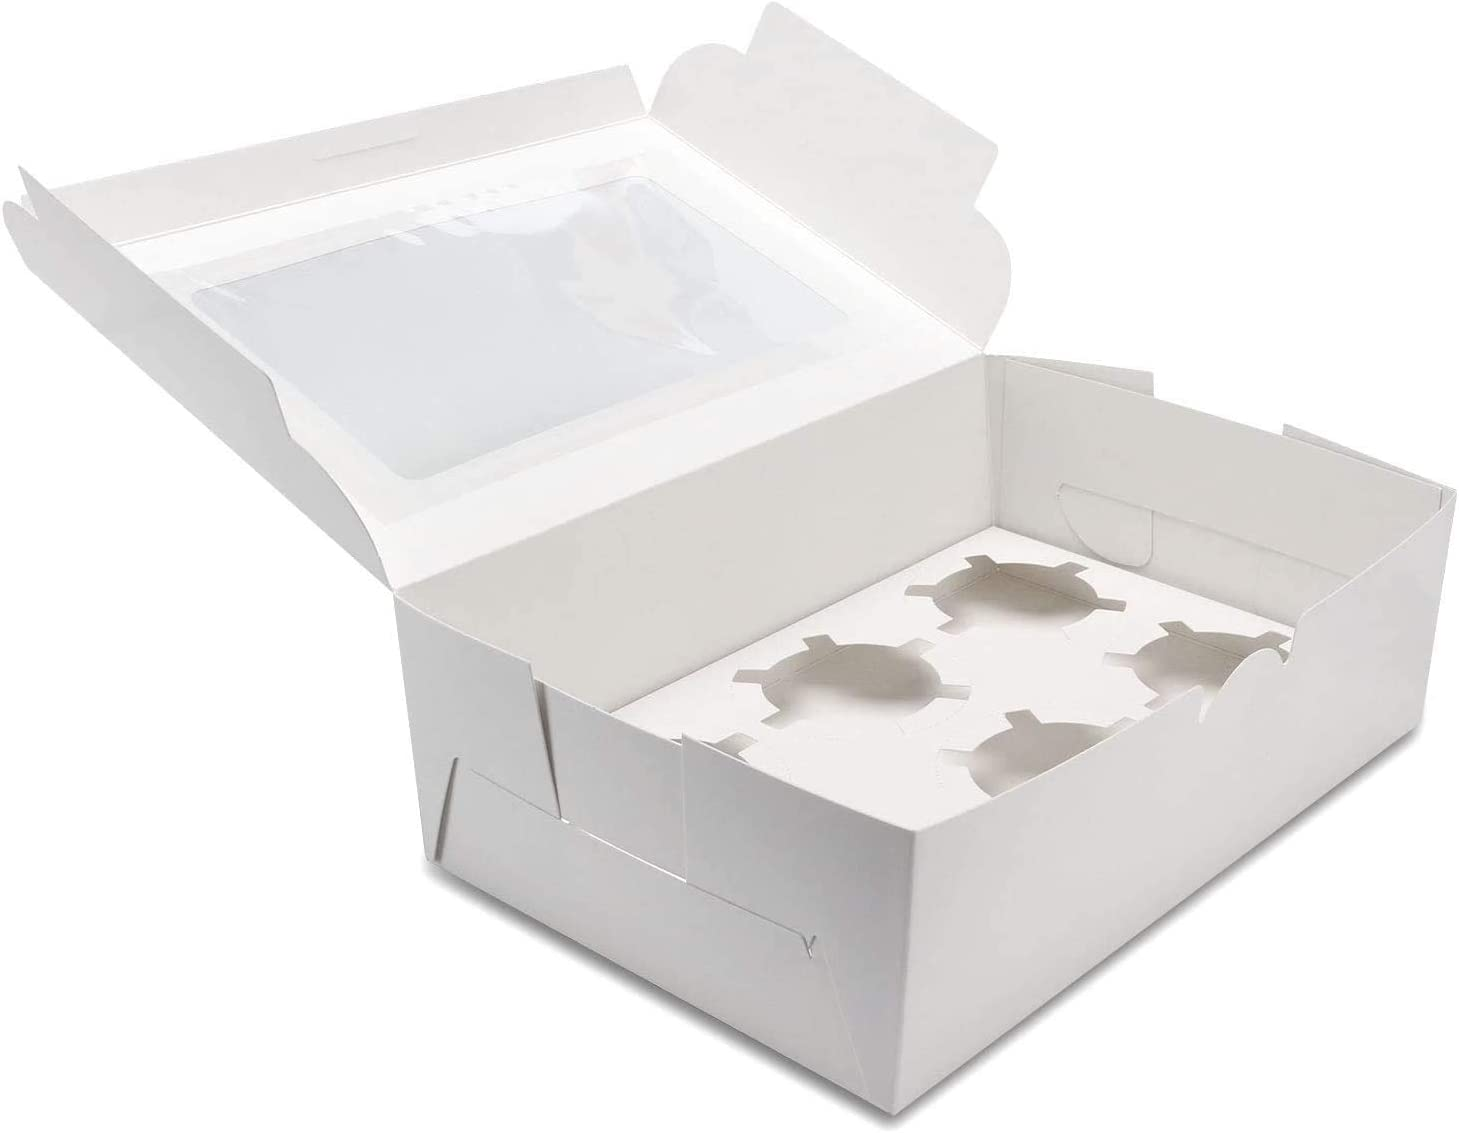 [30-Set]2.9x6.3x9.3 Inch Cupcake Boxes Hold 6 Standard Cupcakes, White Bakery Boxes with Window Cupcake Boxes, Cupcake Containers, Food Grade Cupcake Holders for Cookies, Muffins, Pastries (White)